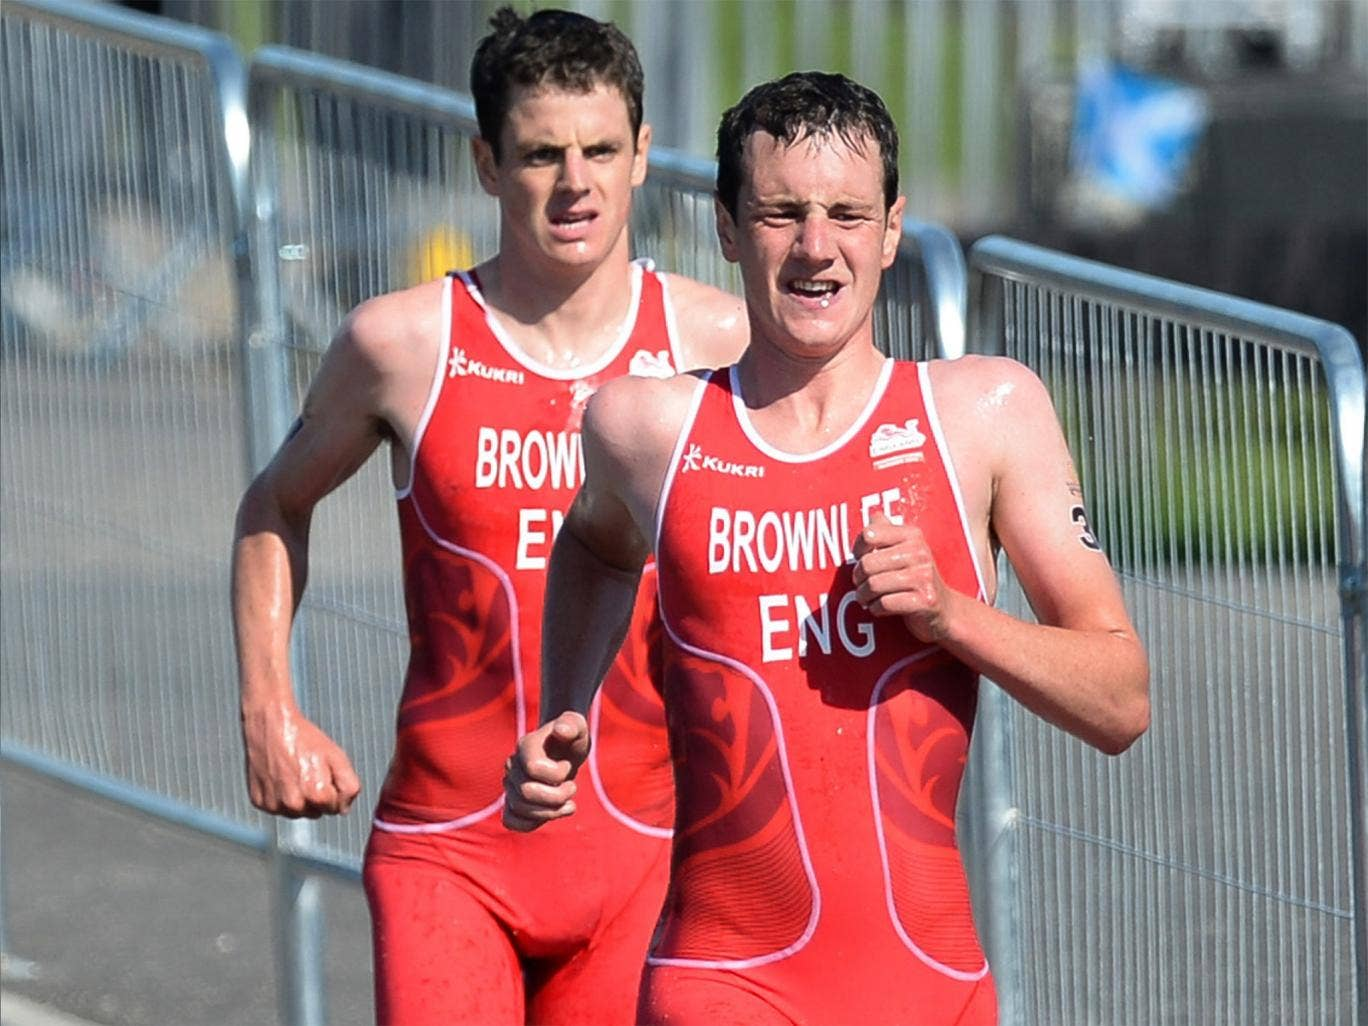 Alistair and Jonathan Brownlee on their way to winning medals in the mens triathlon